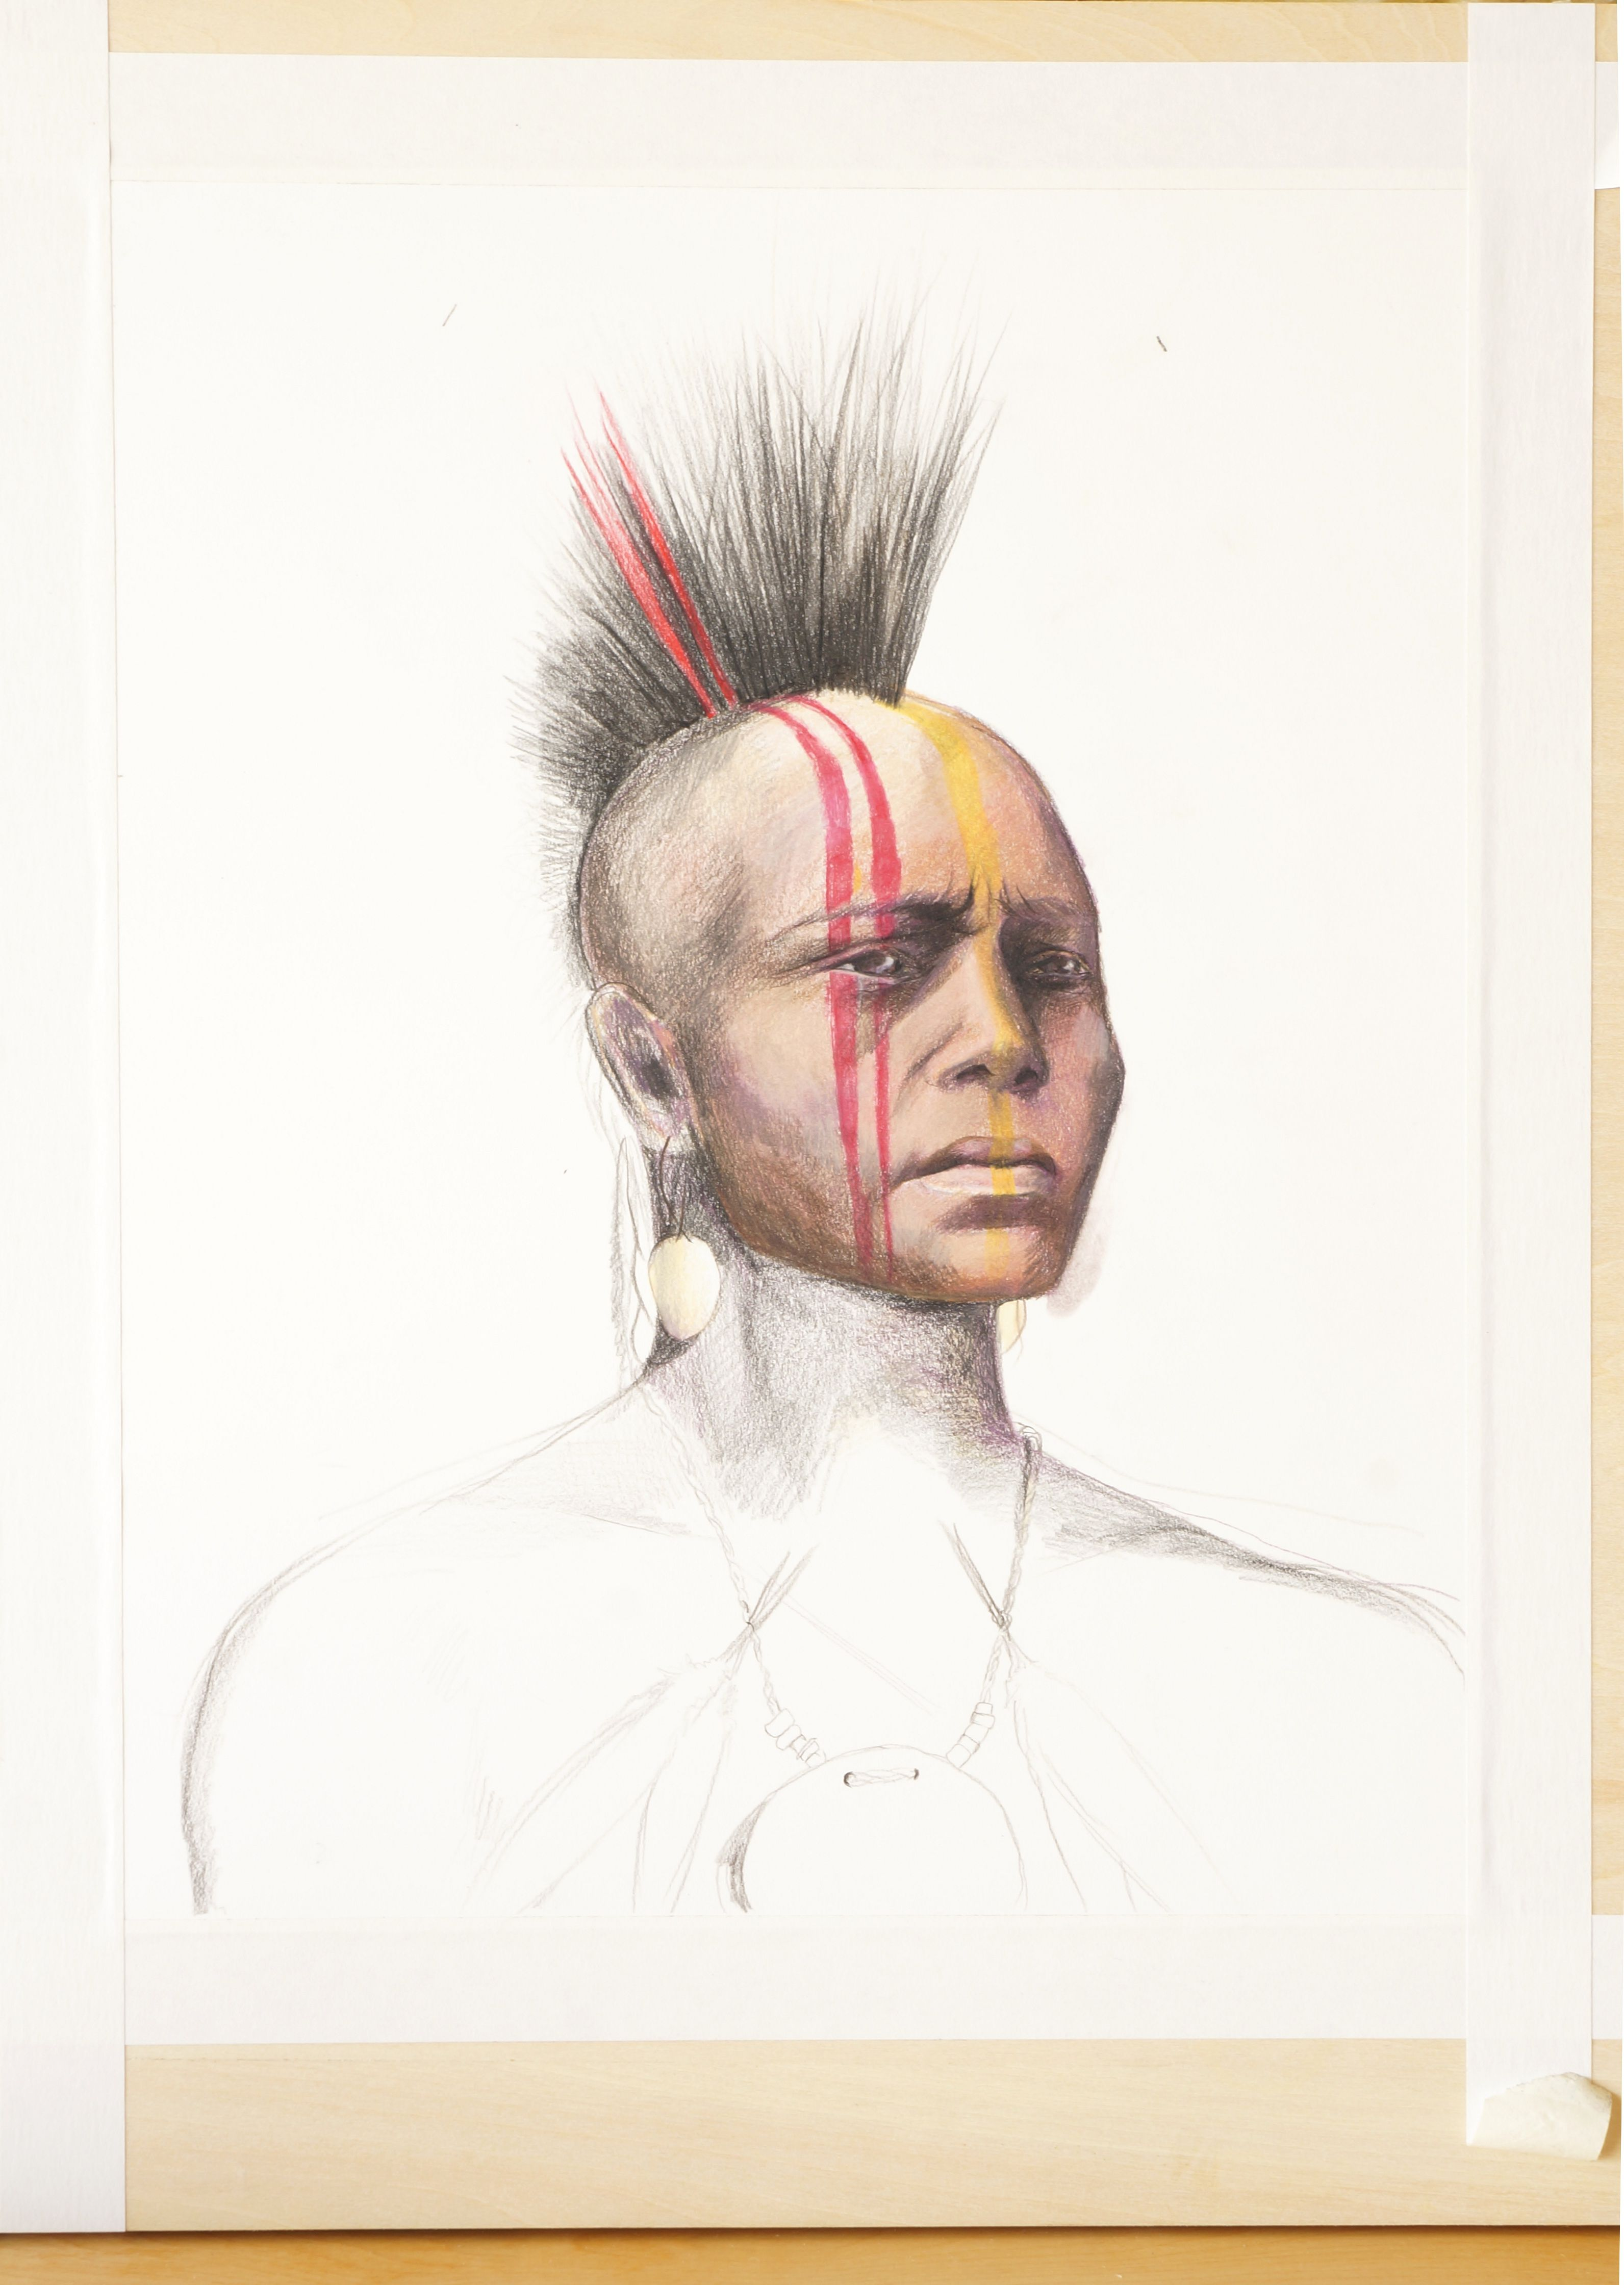 Warrior I am working on in Colored Pencil